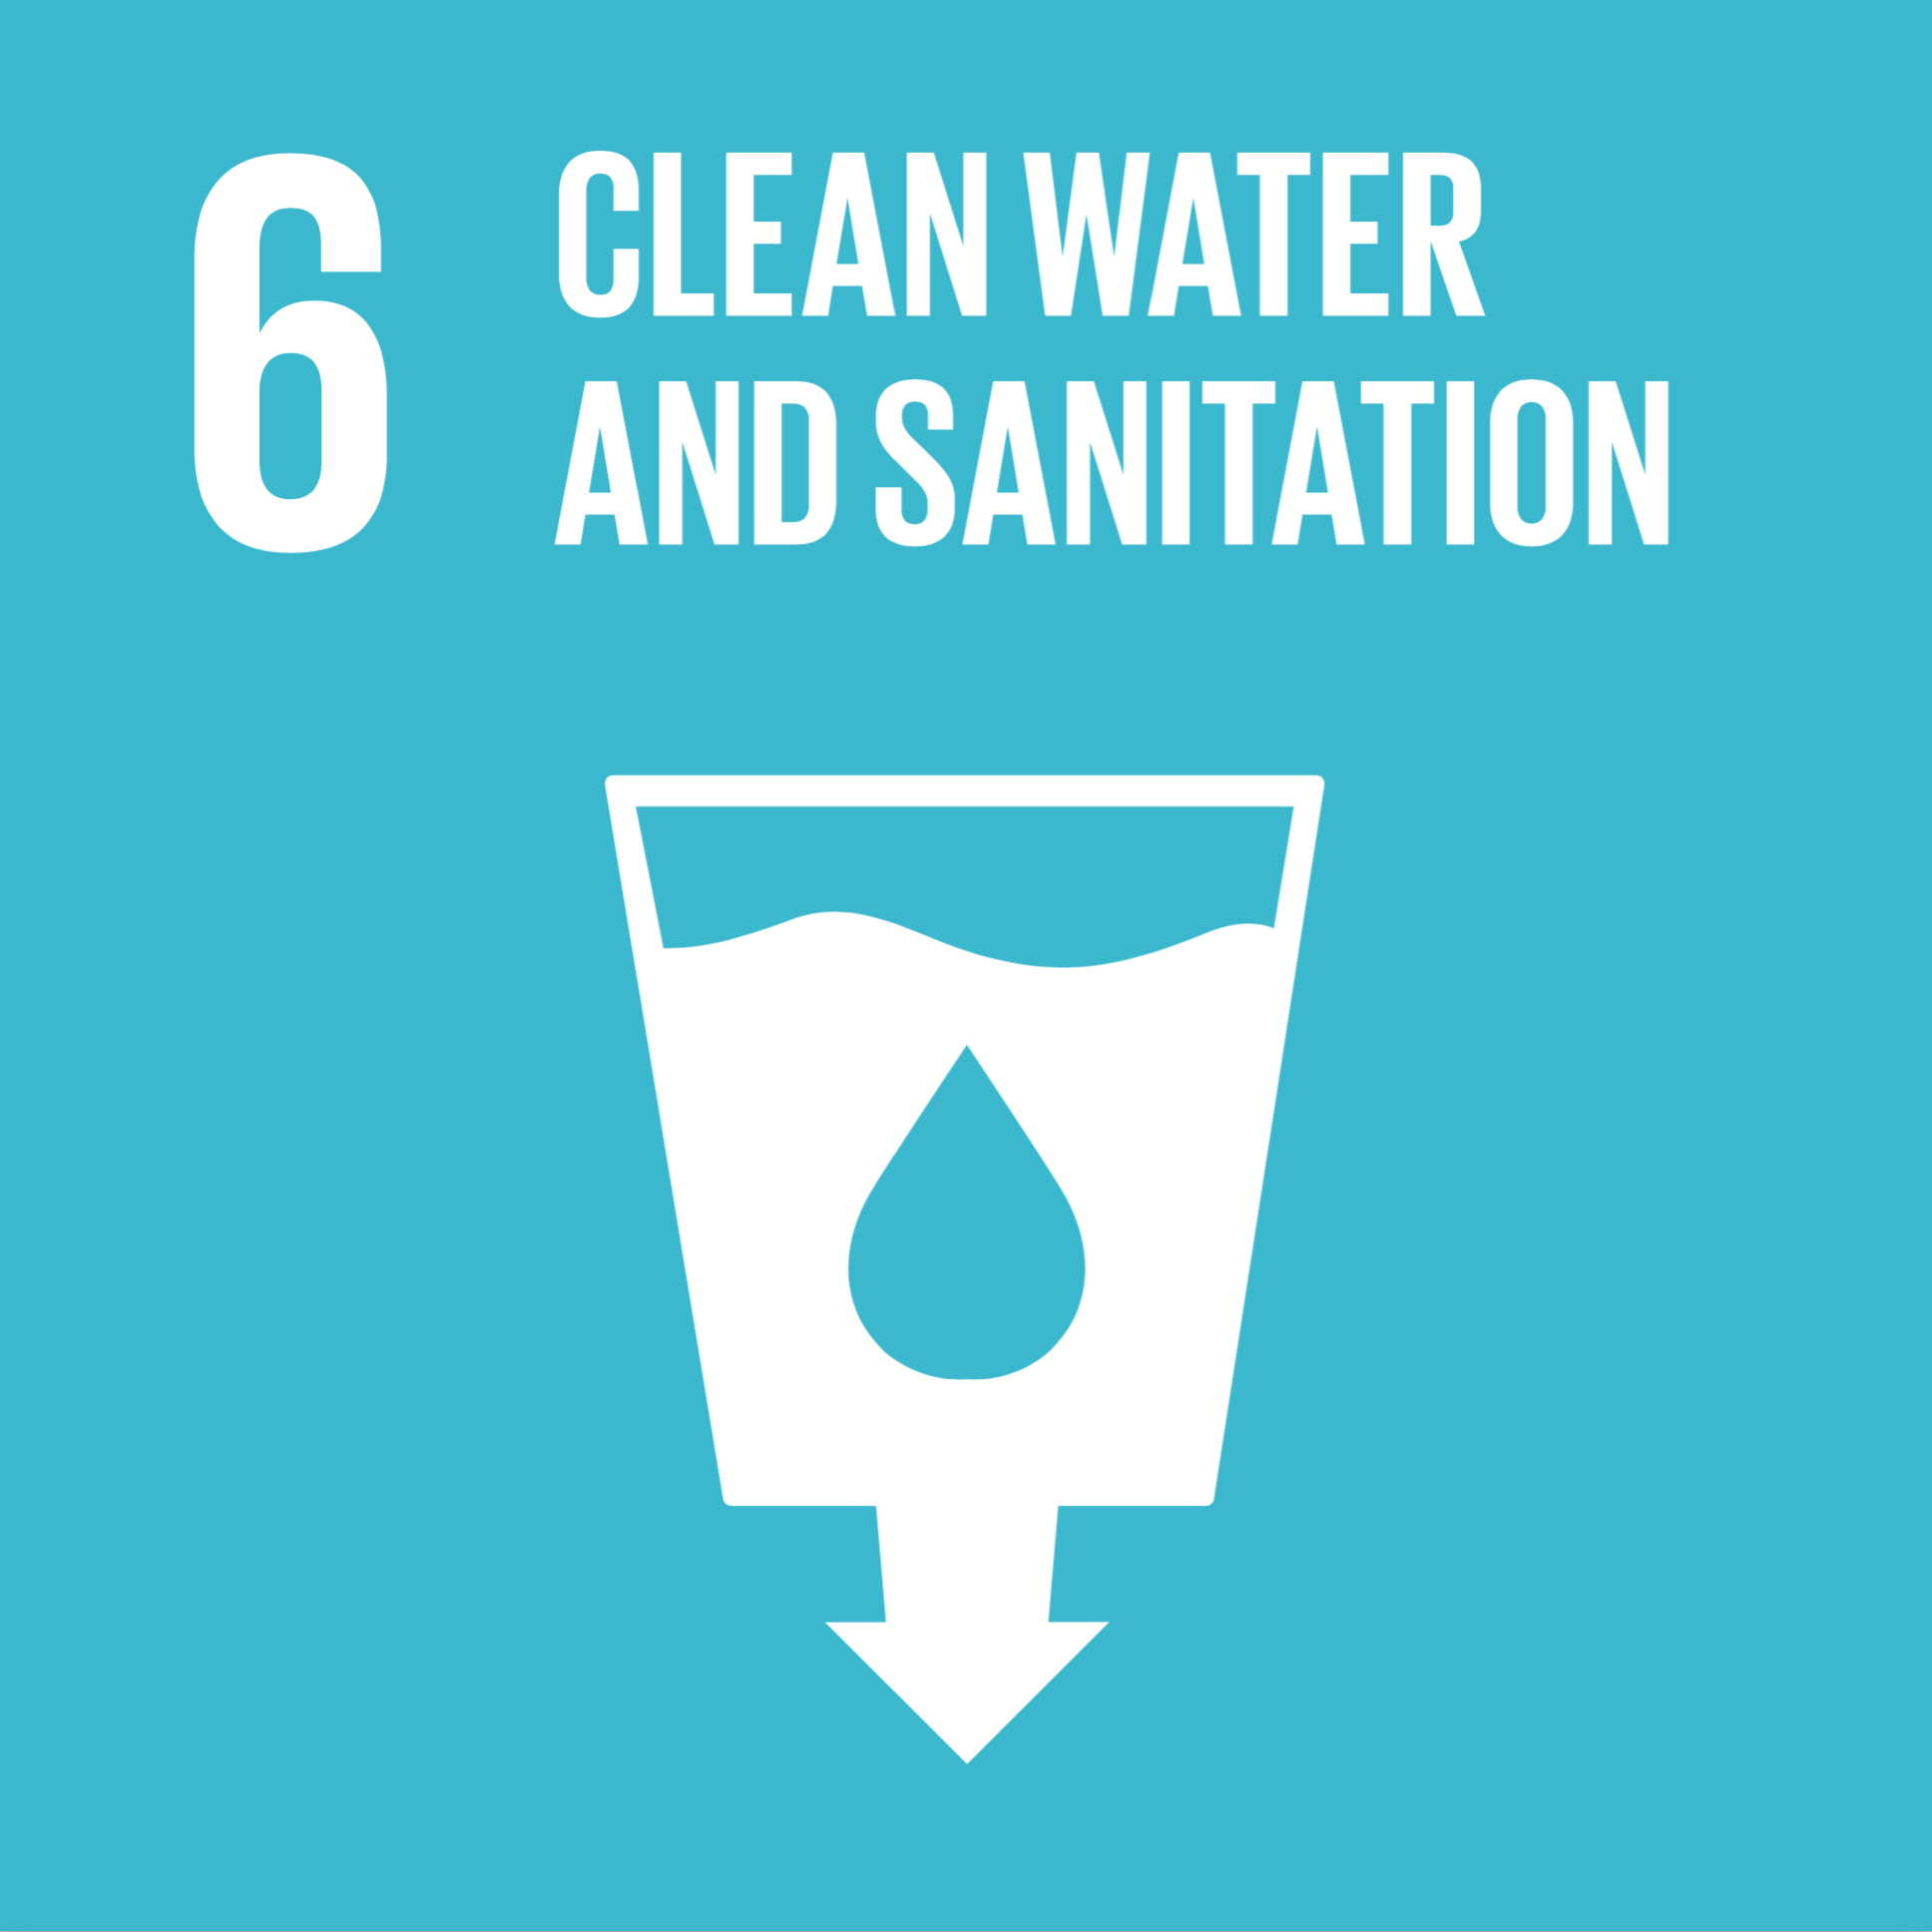 Sustainable Development Goal 6